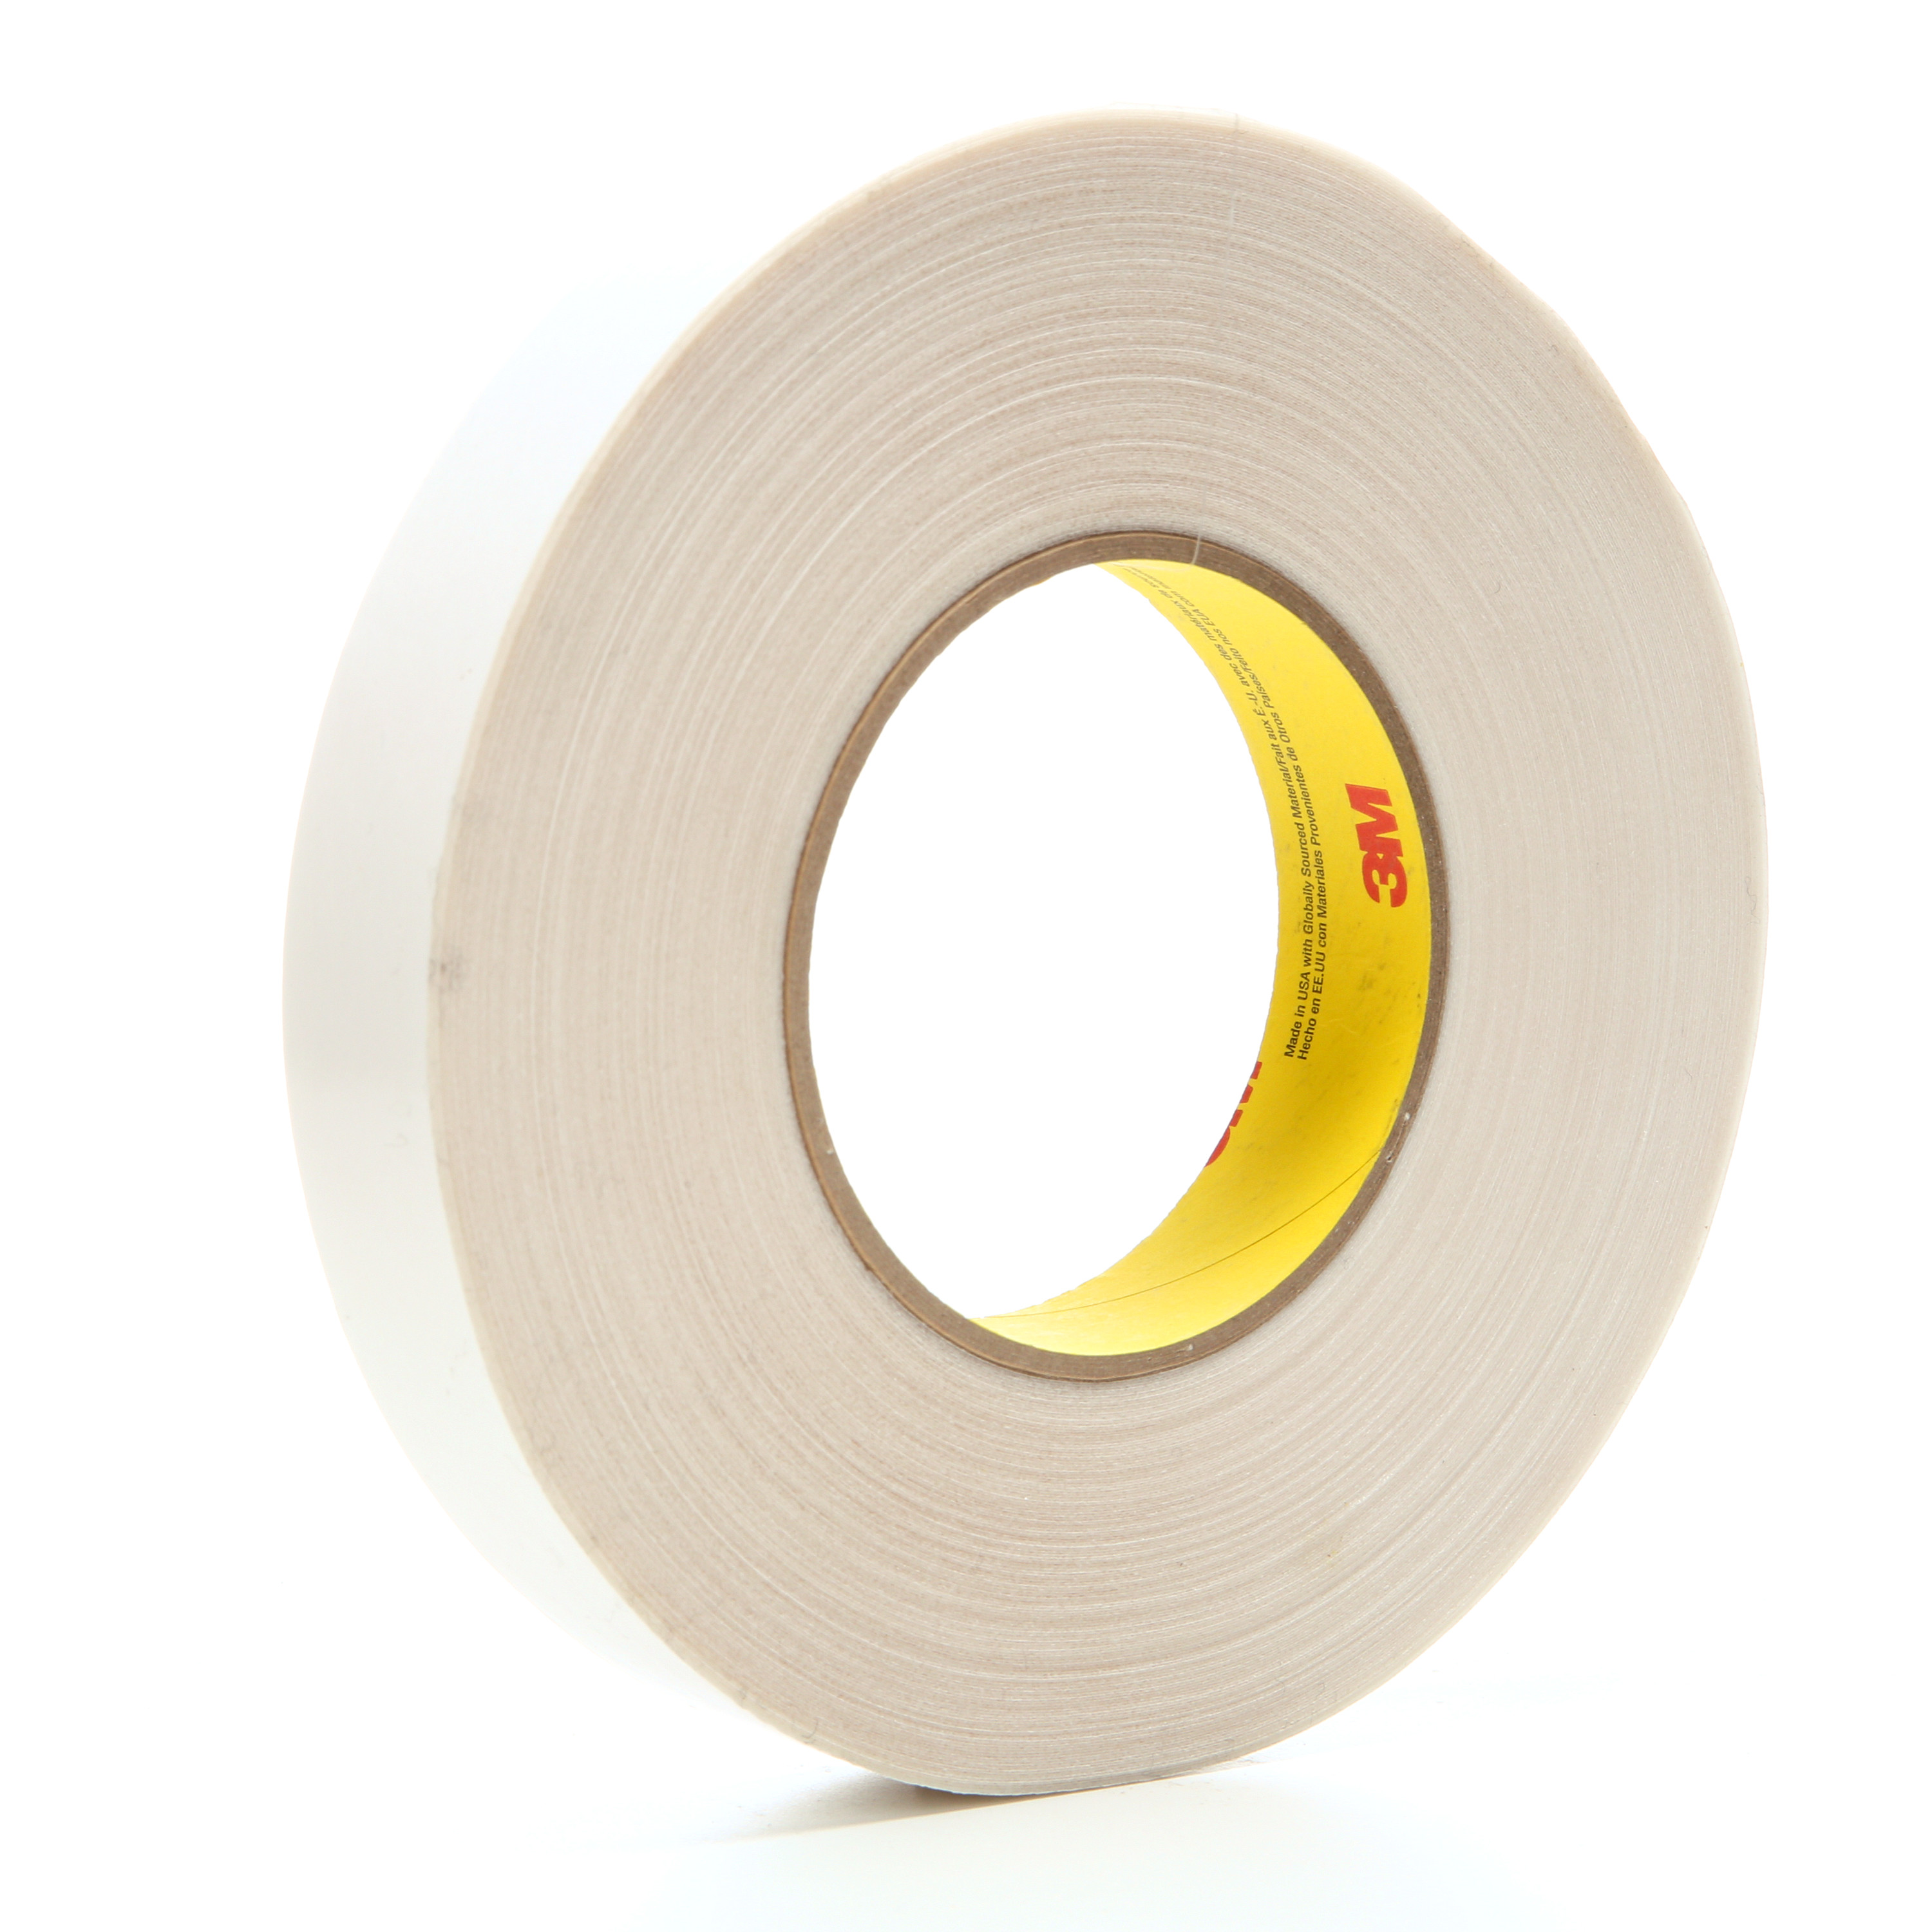 3M™ Double Coated Tape 9741, Clear, 24 mm x 55 m, 6.5 mil, 48 rolls per case